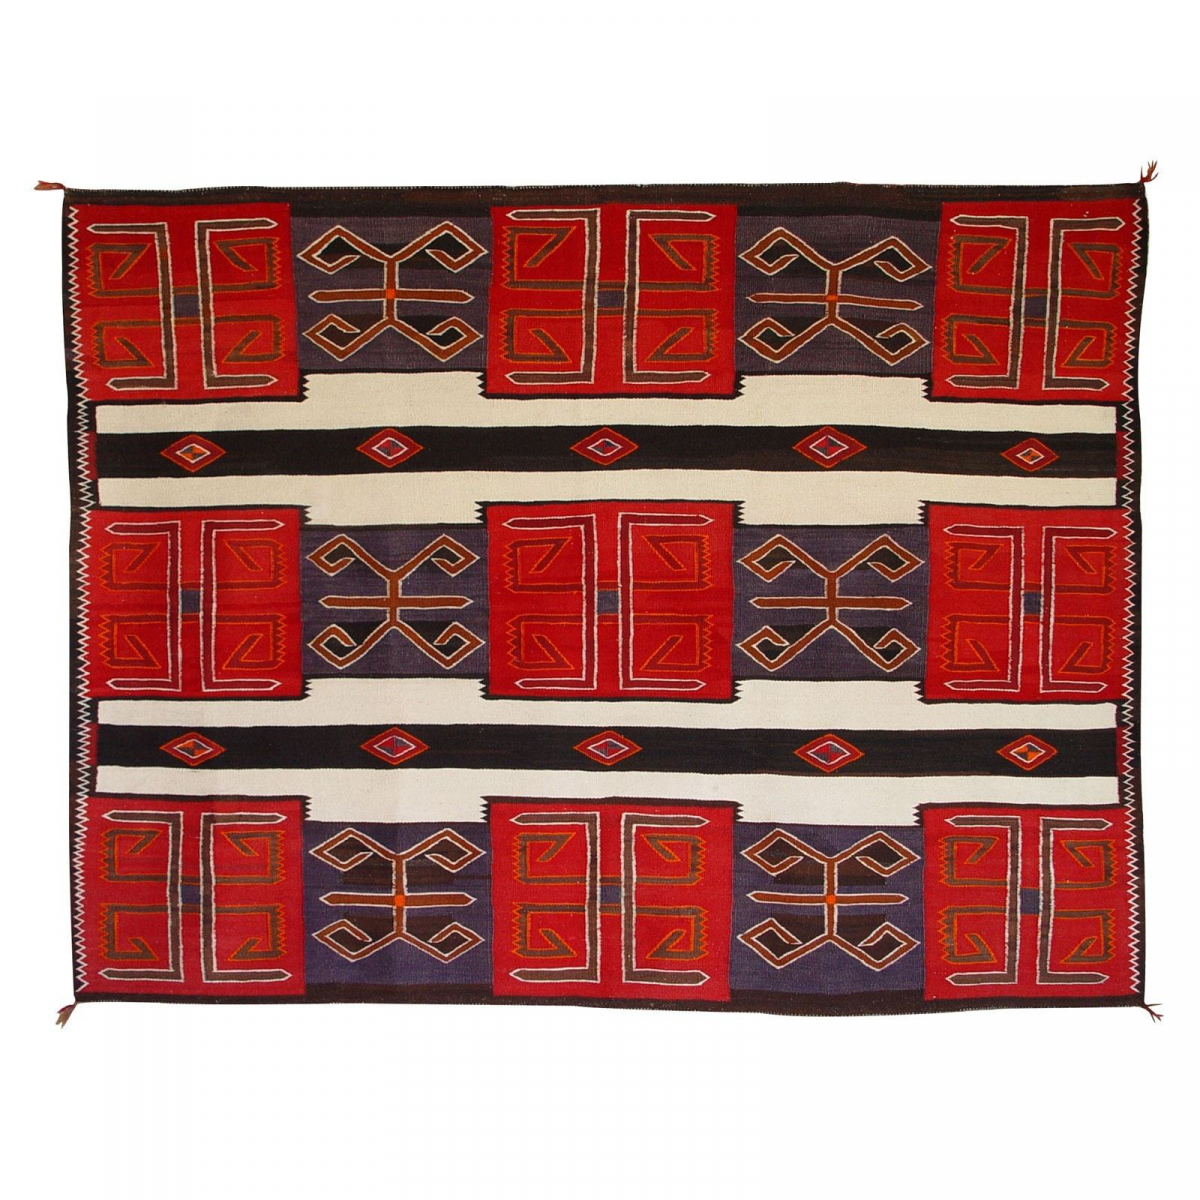 3rd Phase Chief Blanket : Historic : GHT 2126 : Circa 1920-1930's